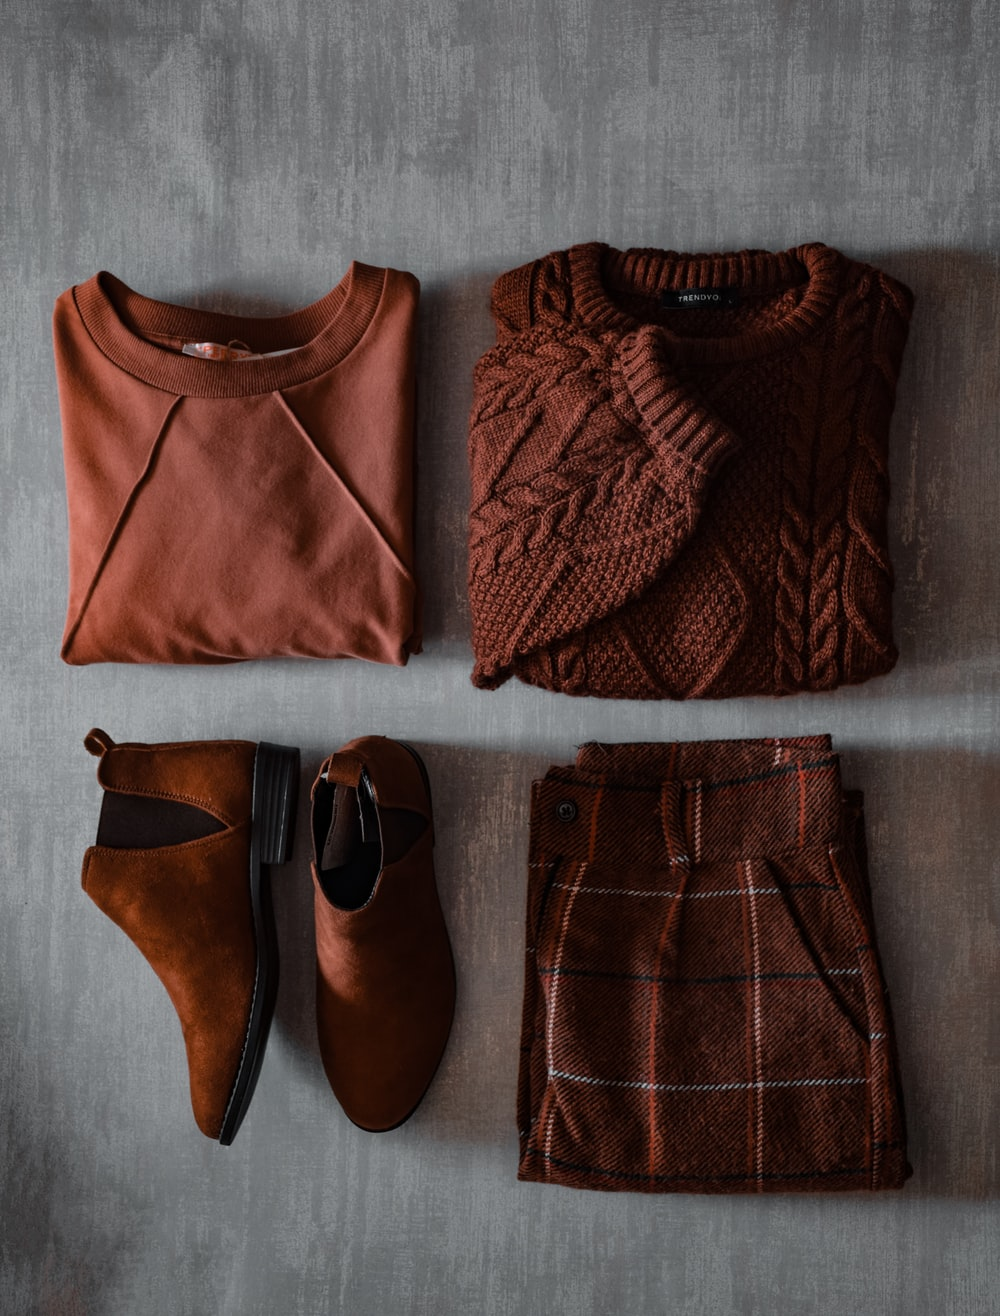 brown leather shoes beside brown leather belt